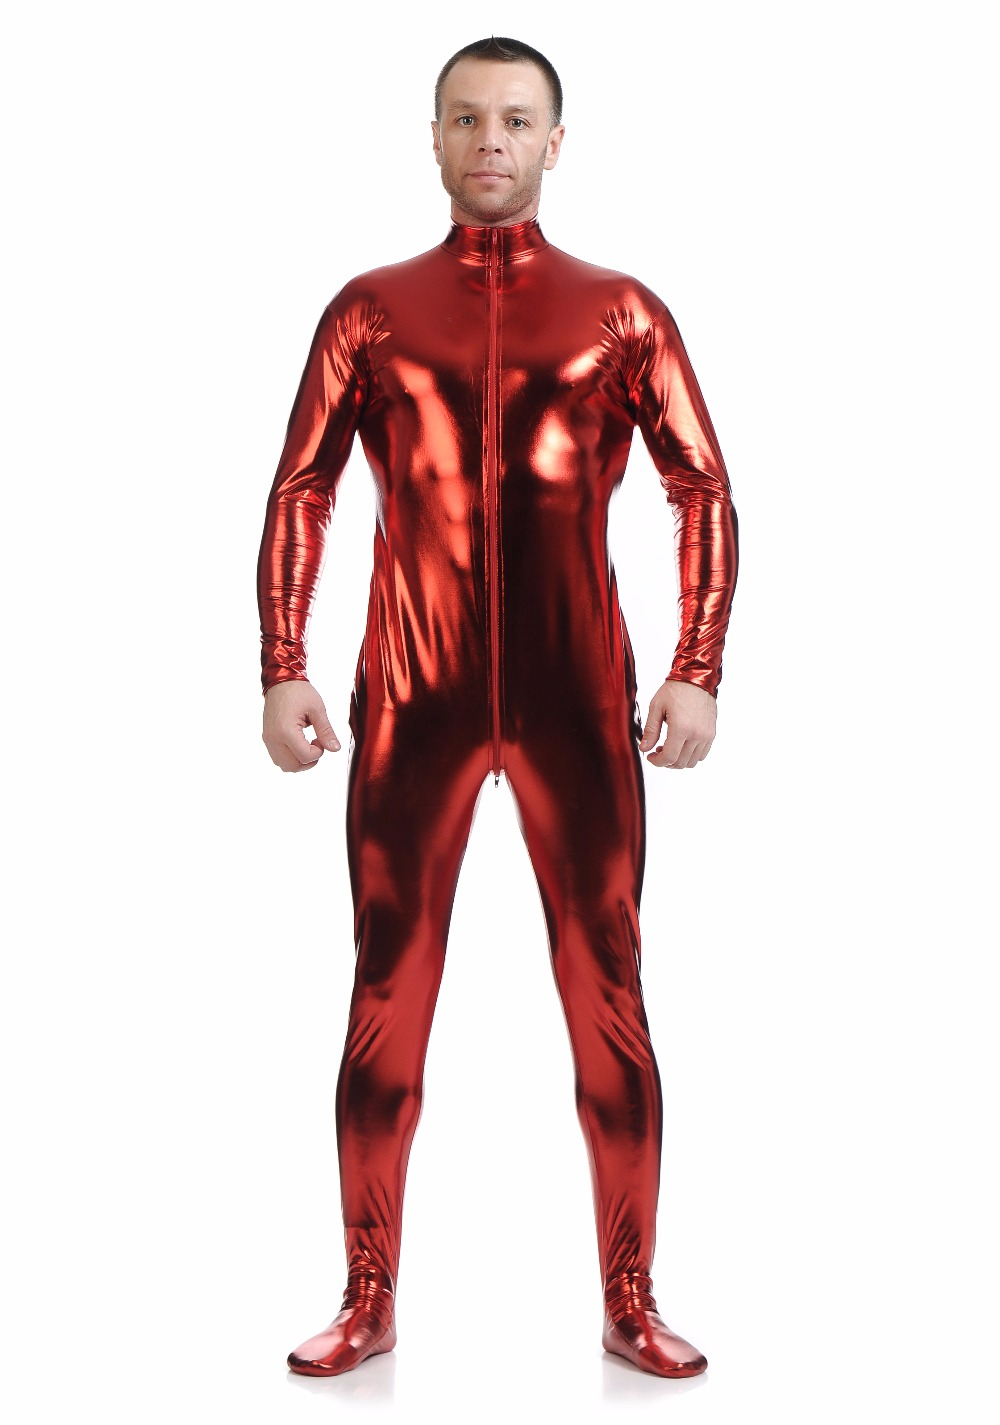 Adult Metallic Full Body Zentai Suit Men Lycra Bodysuits Spandex Catsuits Shiny Crotch Zipper Zentai Body Suits